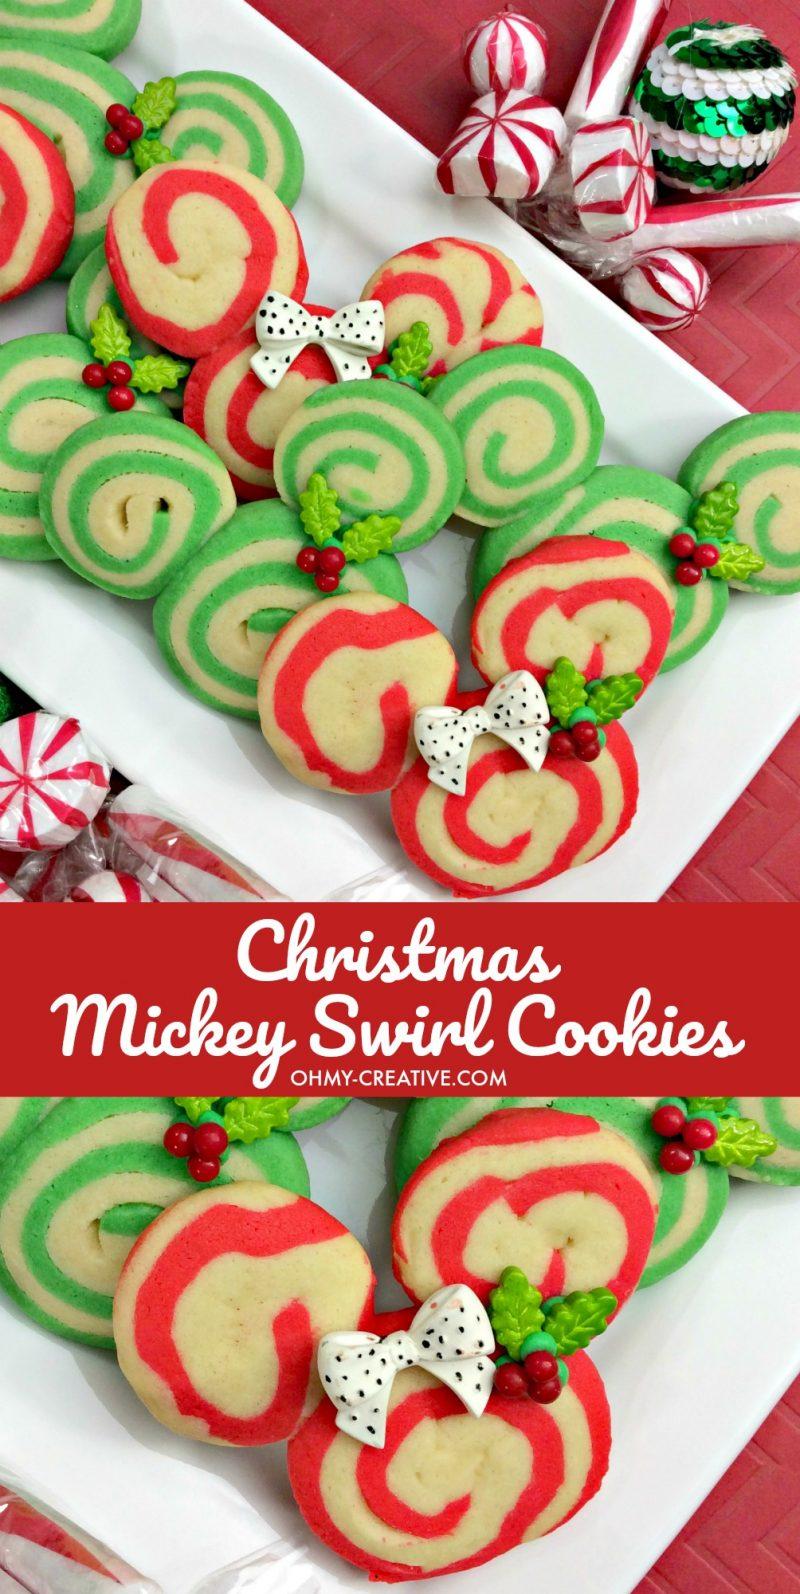 Mickey Christmas Swirl Cookies | OHMY-CREATIVE.COM | Pinwheel Cookies | Spiral Cookies | Pinwheel Recipes | cookie swirl | Swirl Sugar Cookies | Christmas Cookies | Mickey Mouse Cookies | Minnie Mouse Cookies | Disney Cookies